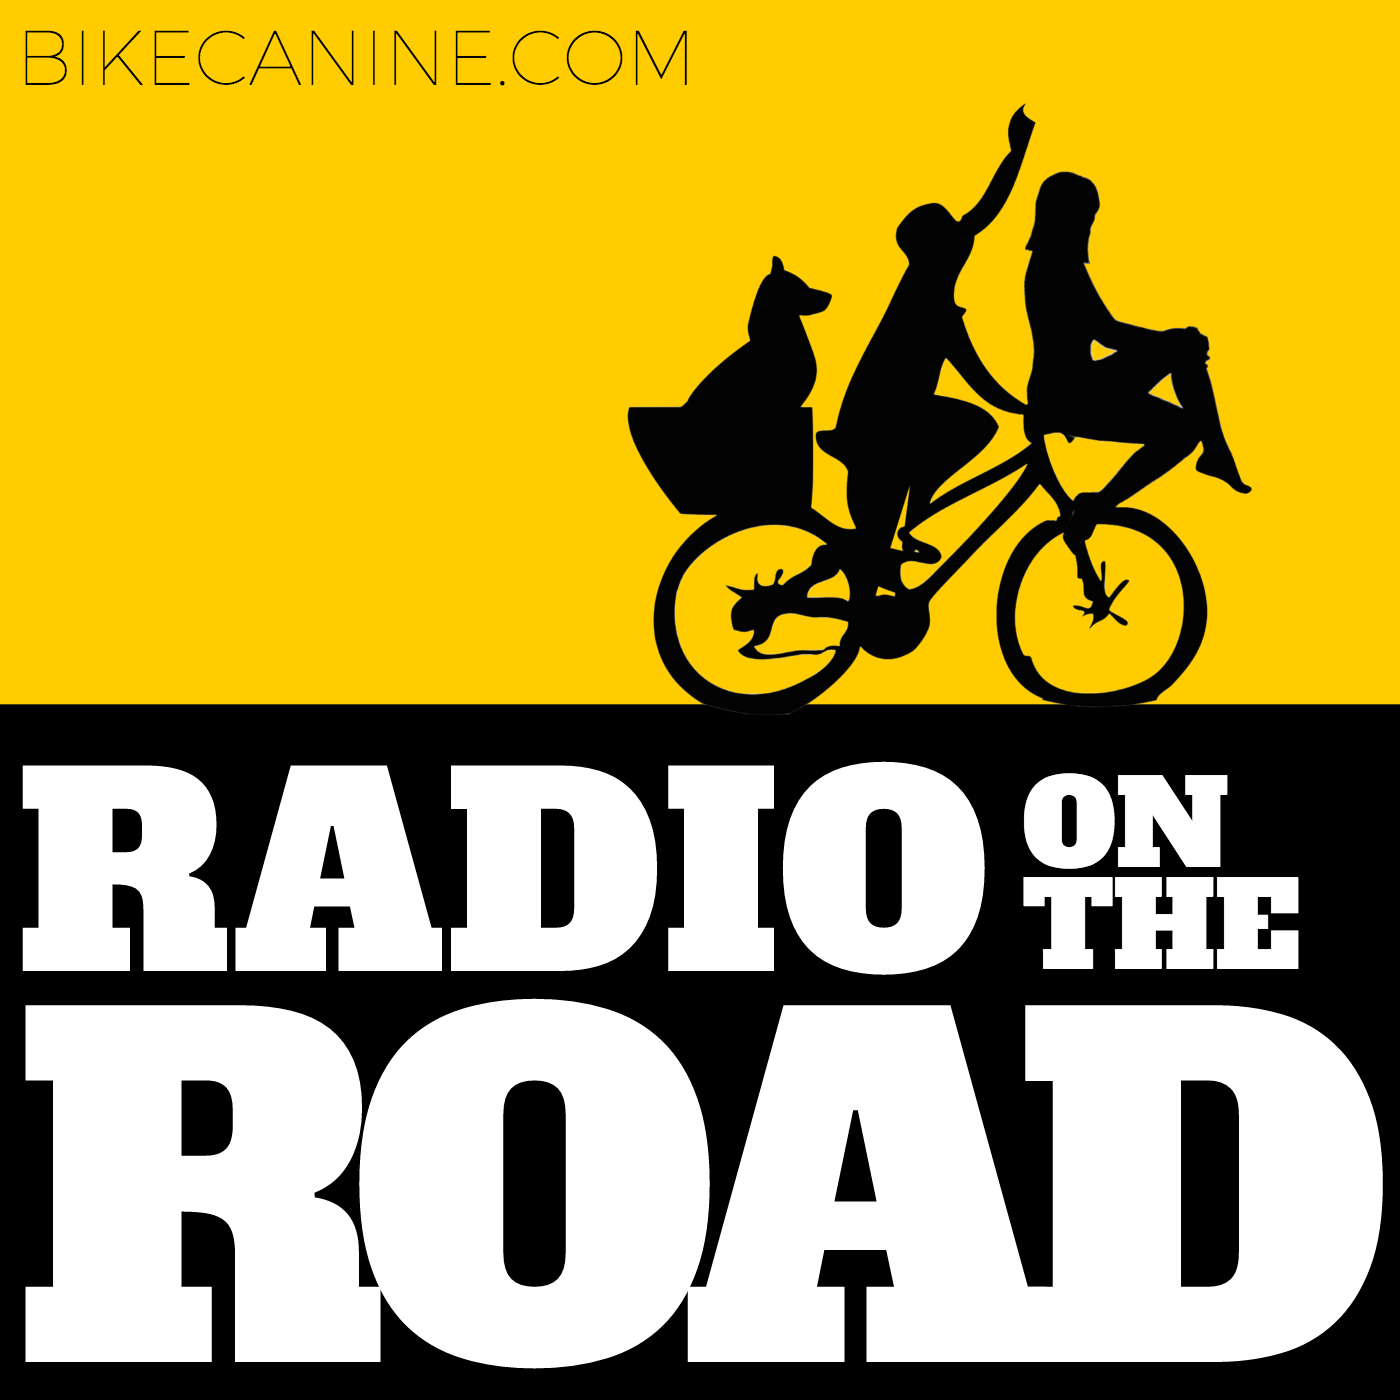 RADIO ON THE ROAD | Cicloturismo, Viajes, Aventuras, Perros, Humor.